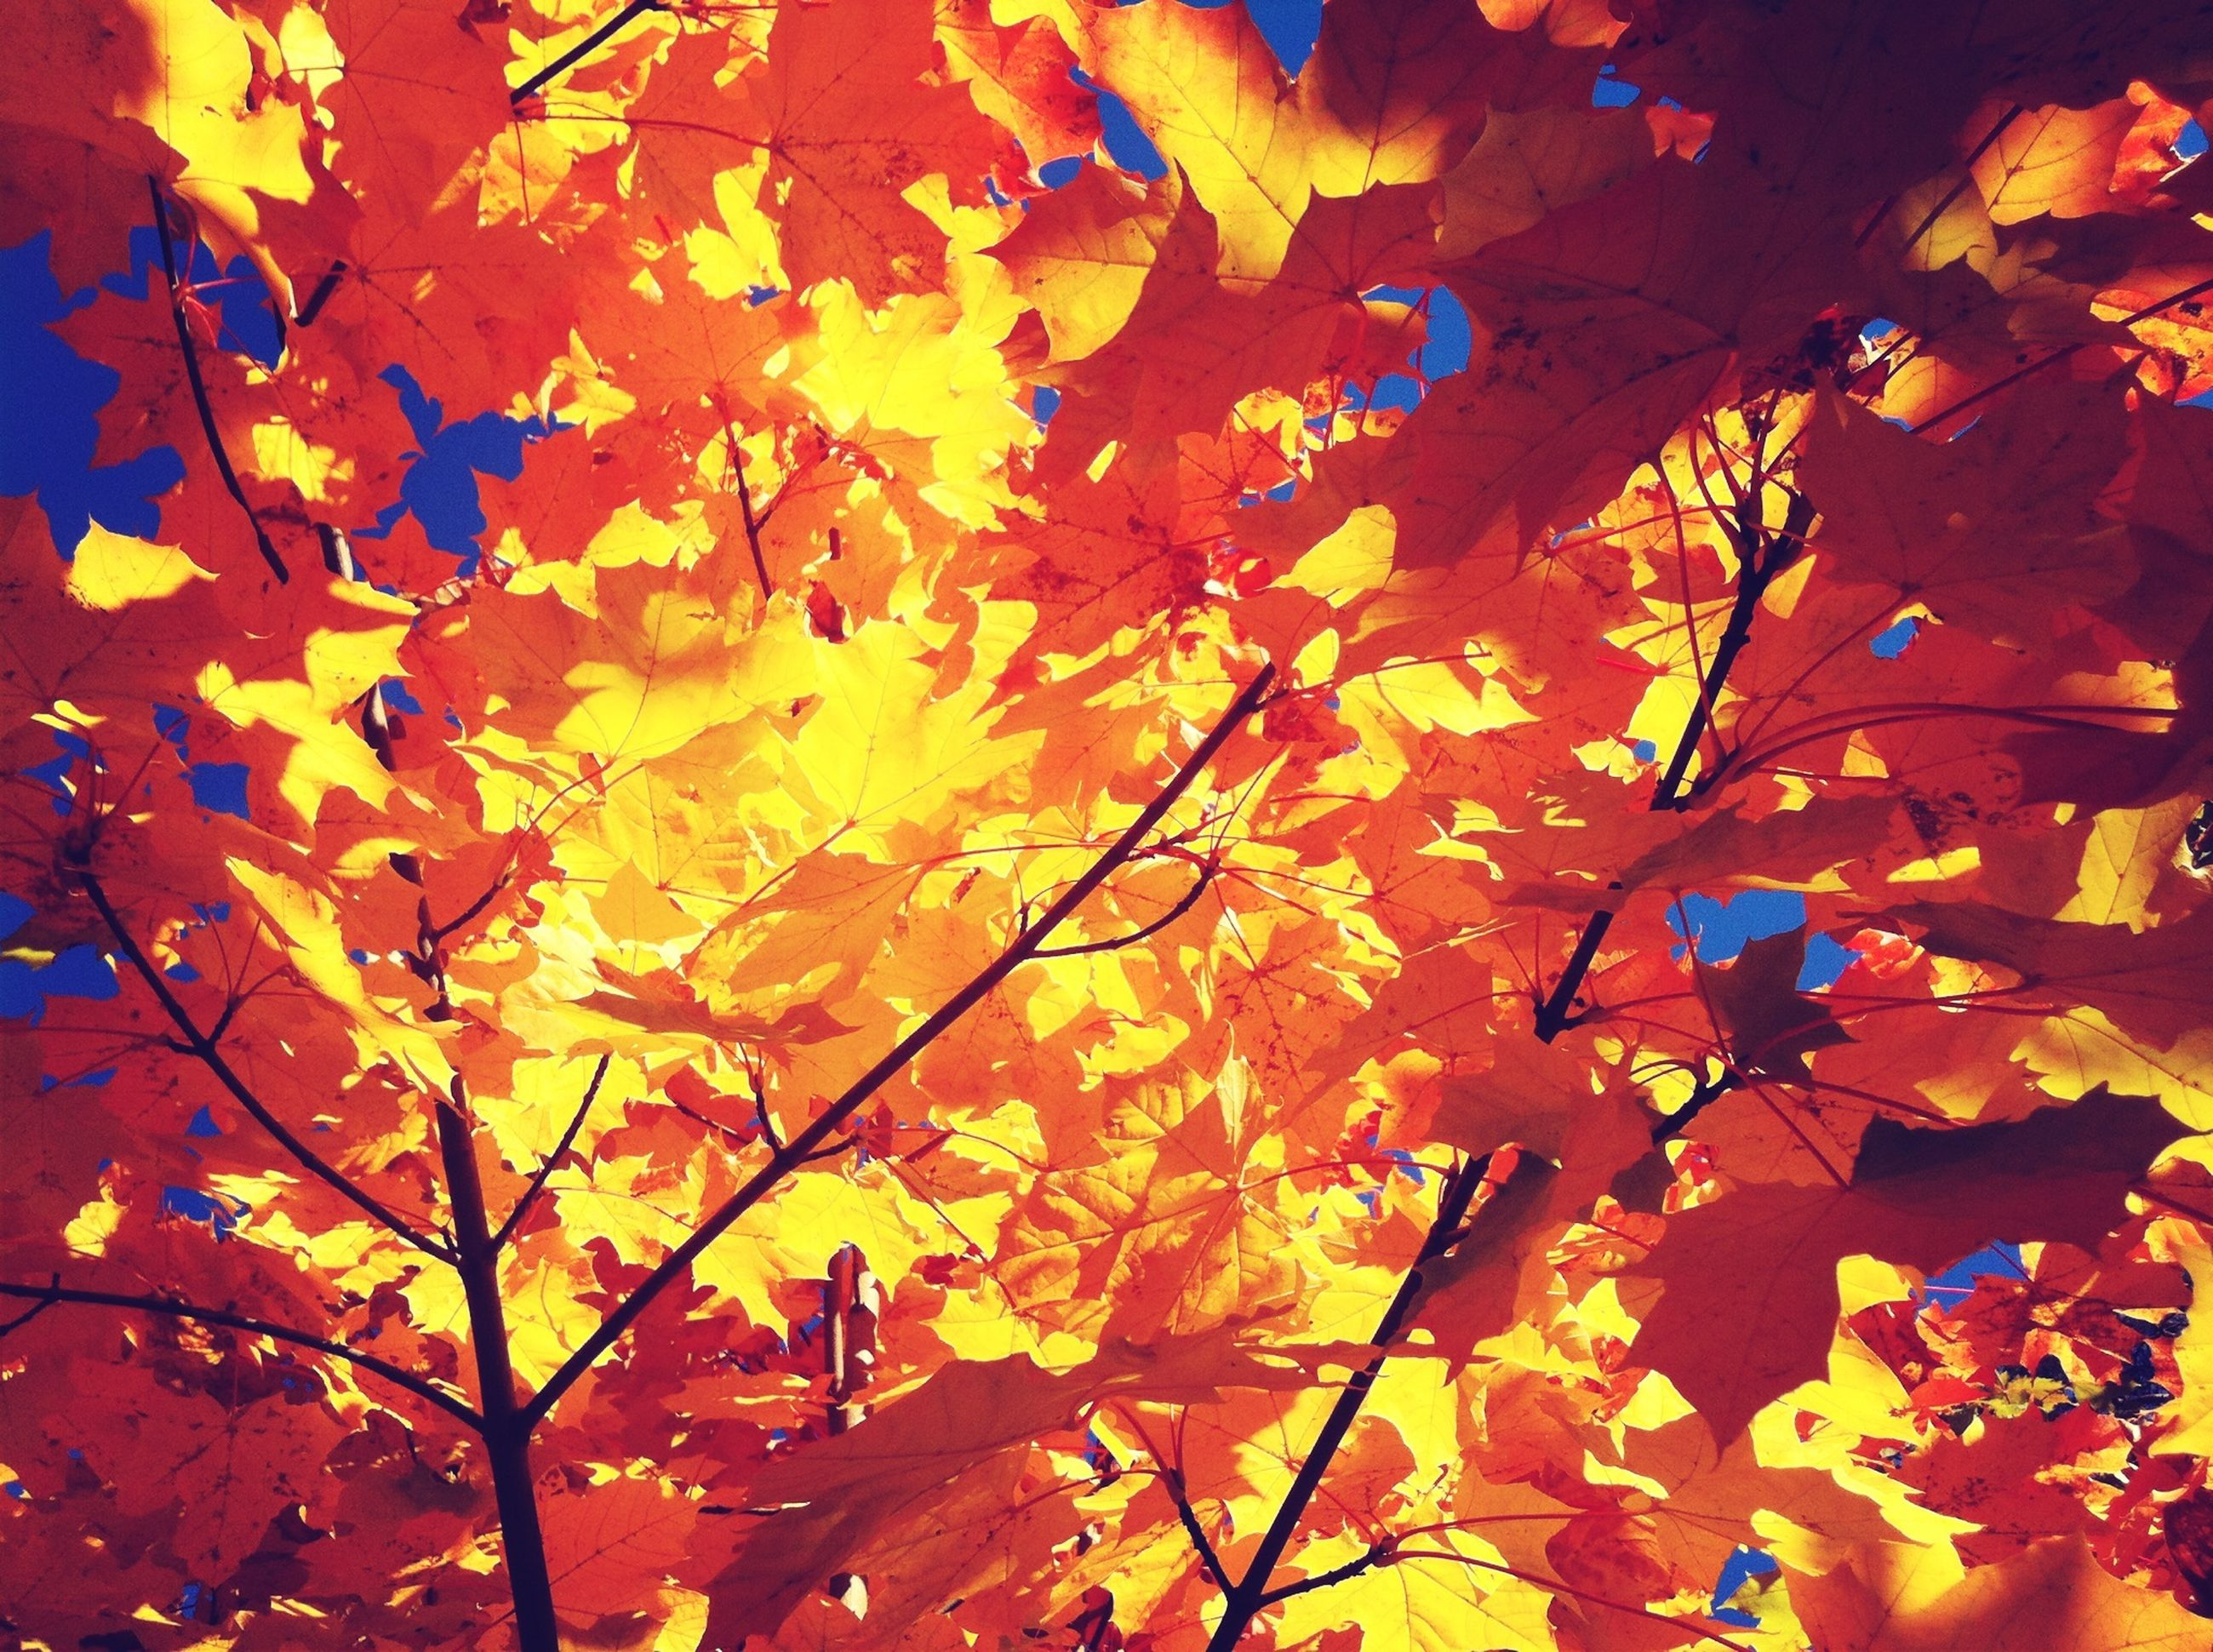 autumn, change, low angle view, orange color, leaf, full frame, branch, backgrounds, tree, season, nature, growth, beauty in nature, sunlight, leaves, tranquility, no people, outdoors, yellow, close-up